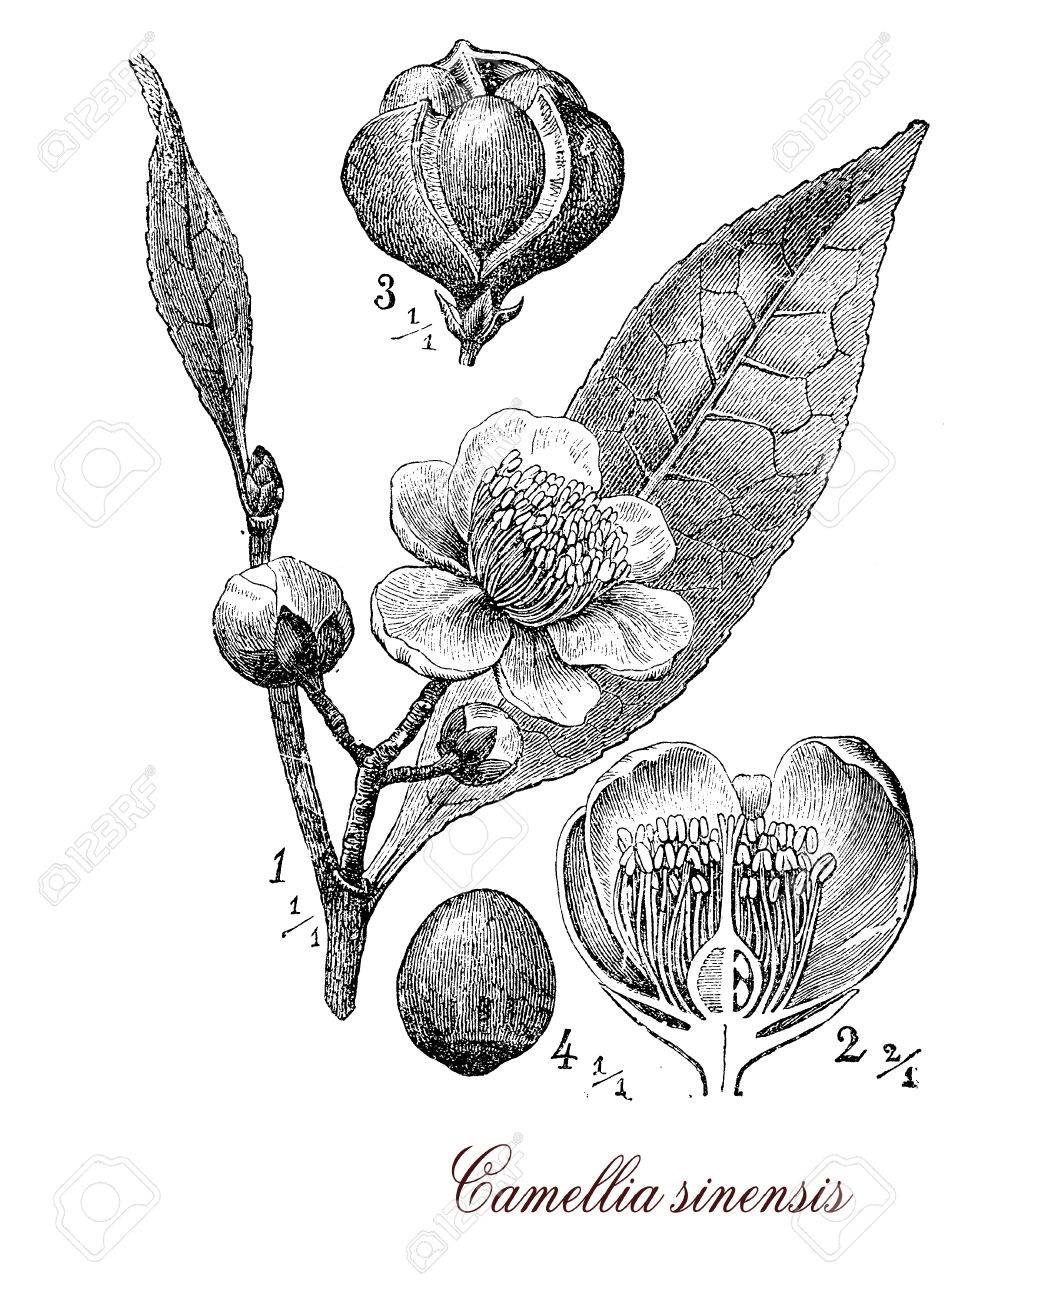 Vintage print describing Camellia sinensis or Camellia flowering plant botanical morphology:leaves are used to produce tea, plant originates from Asia and is cultivated in tropical and subtropical areas.Flowers are yellow-white with 7-8 petals, seeds are Stock Photo - 55432911